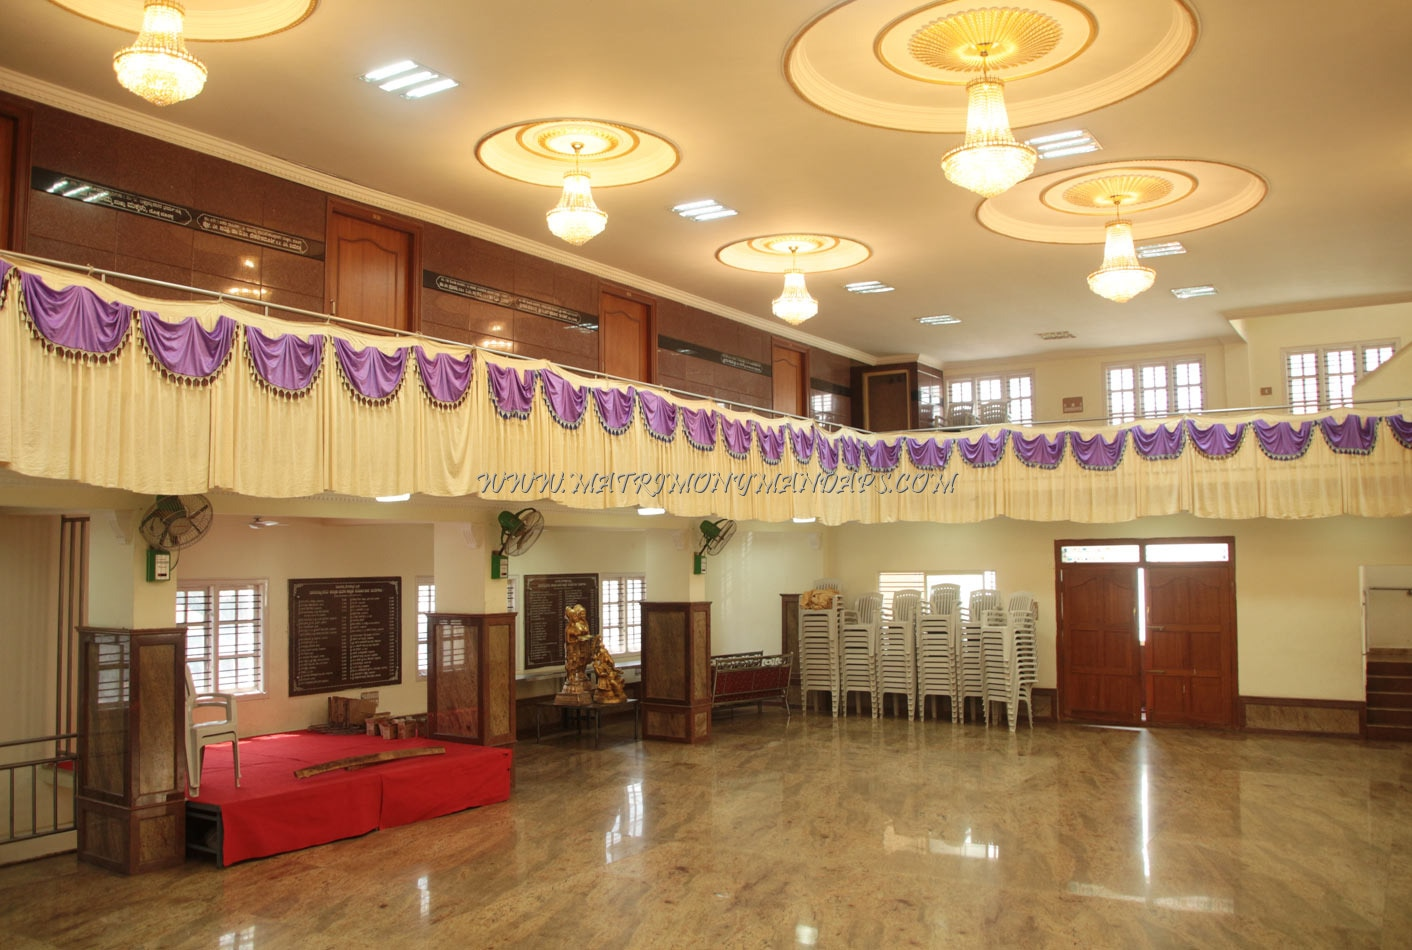 Find the availability of the Maramma Devi Kalyana Bhavan in Doddamavalli, Bangalore and avail special offers